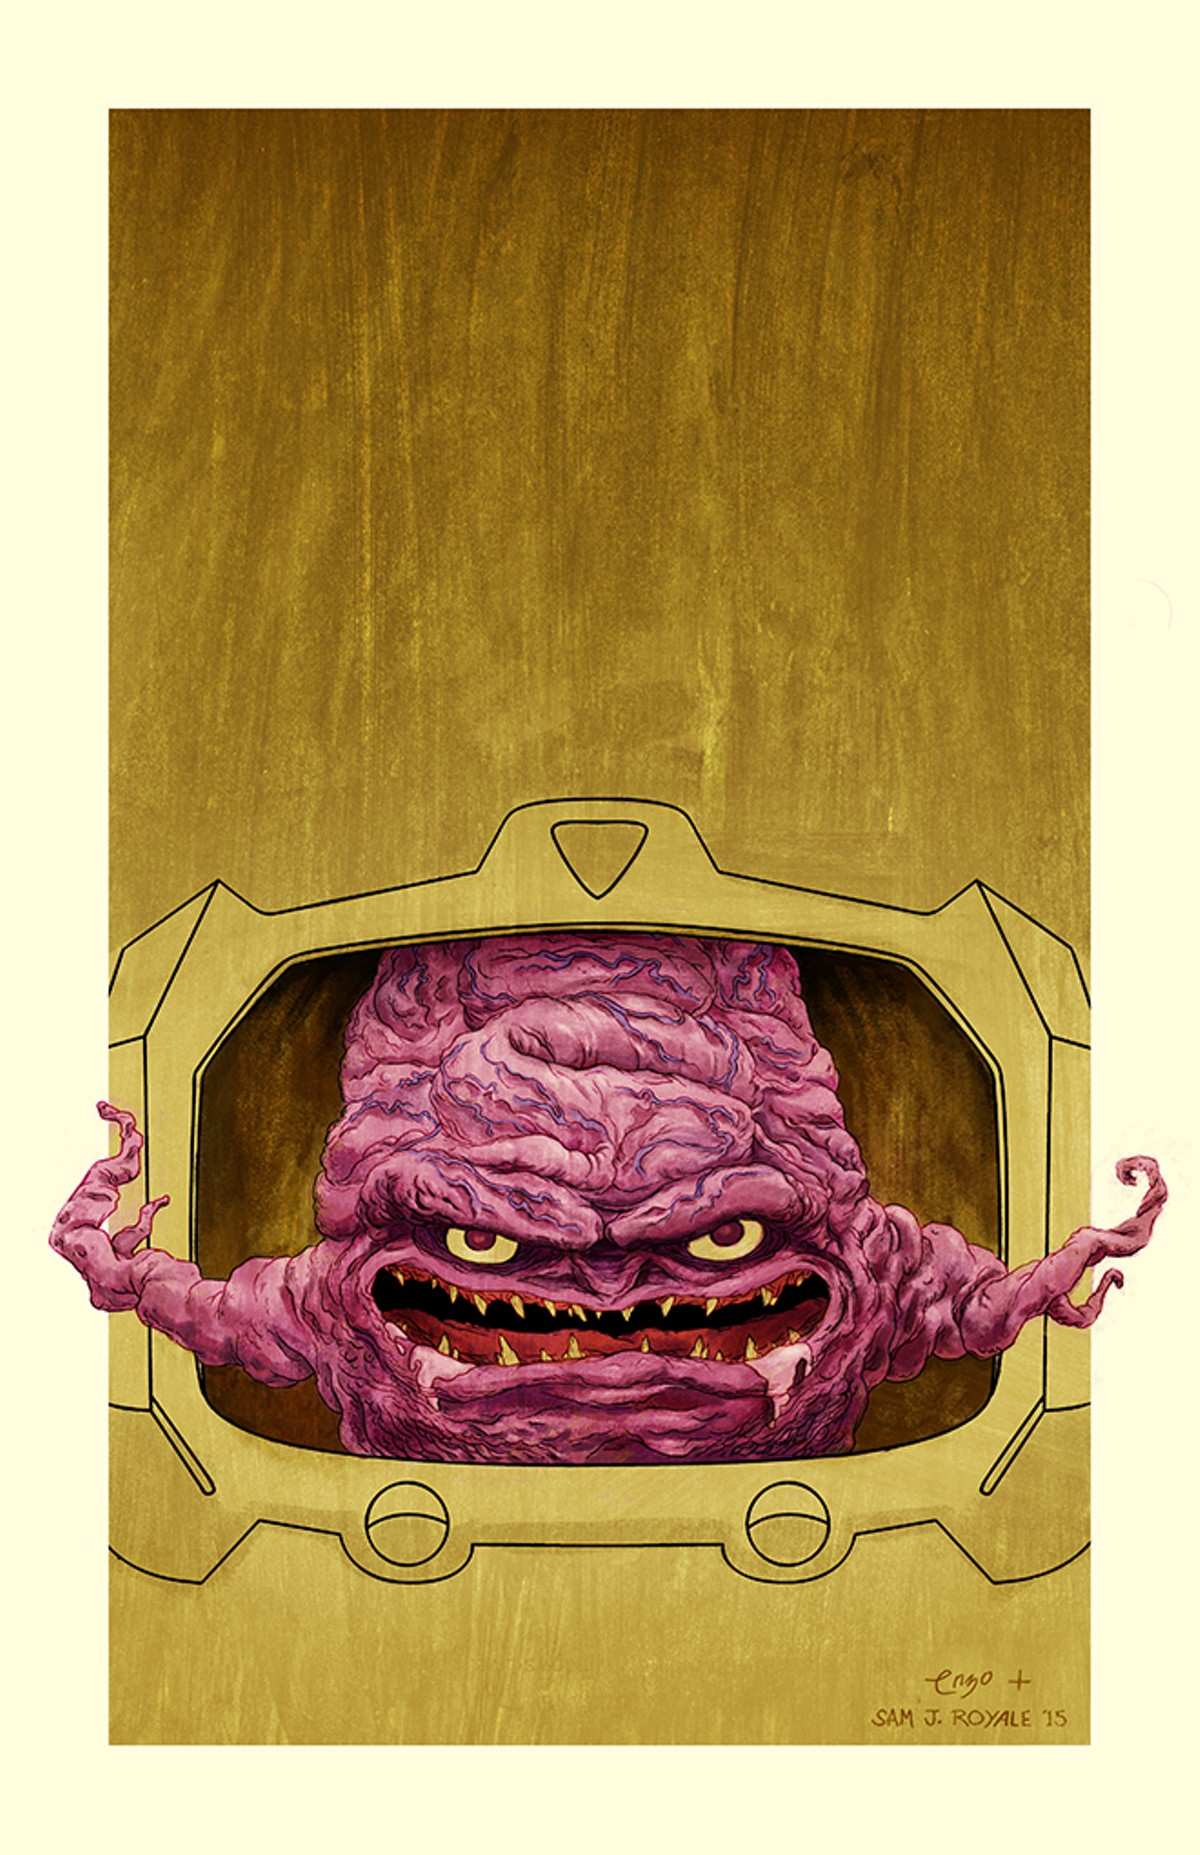 gallery_bosskrang_flyer6_credit_sam_j_royale_and_enzo_garza.jpg